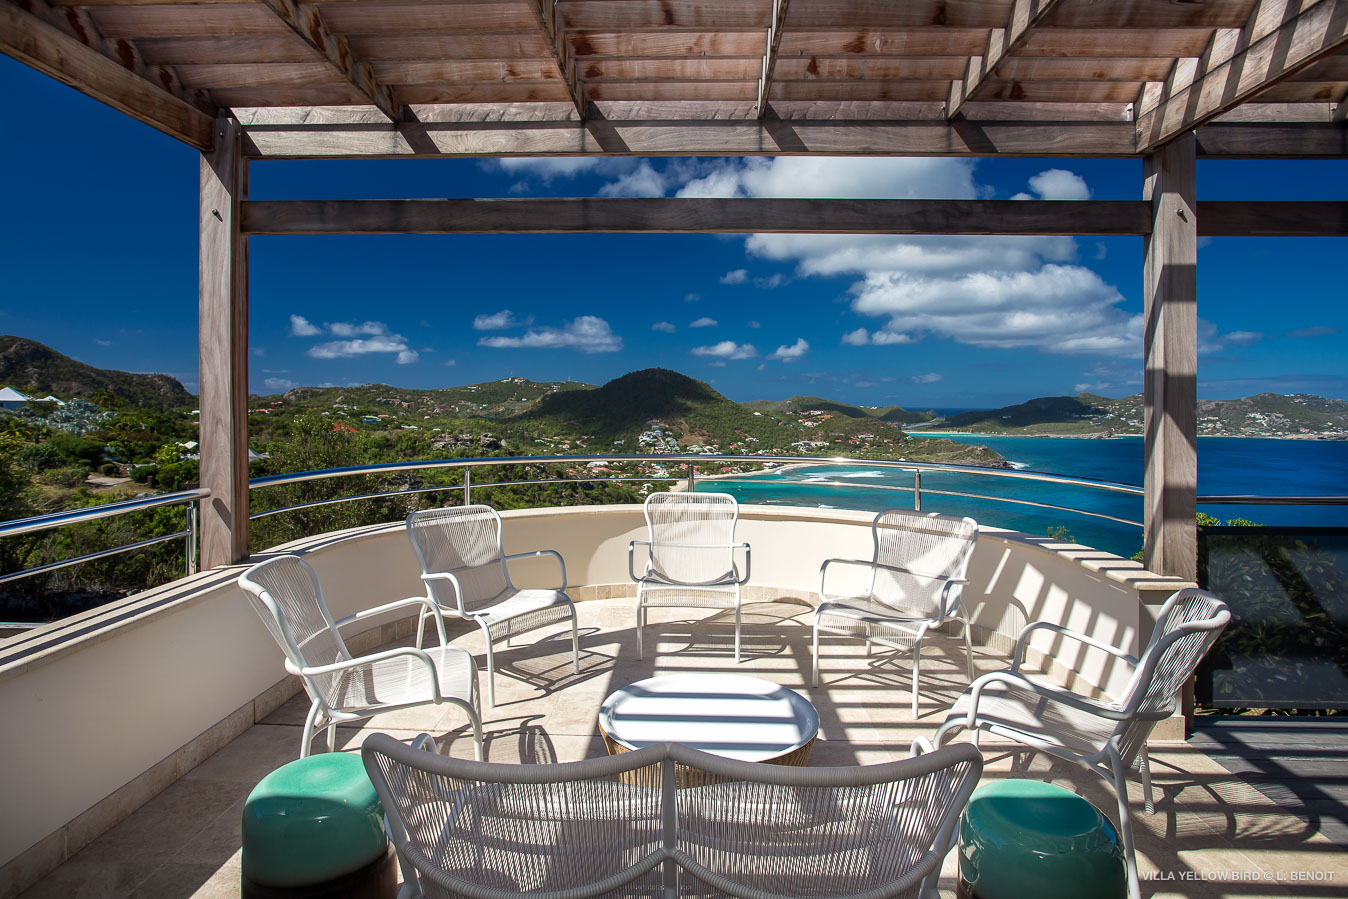 Villa Yellow Bird - Chic Villa for Rent St Barth Ideal for a Serene Vacation with Authentic Atmosphere - Patio